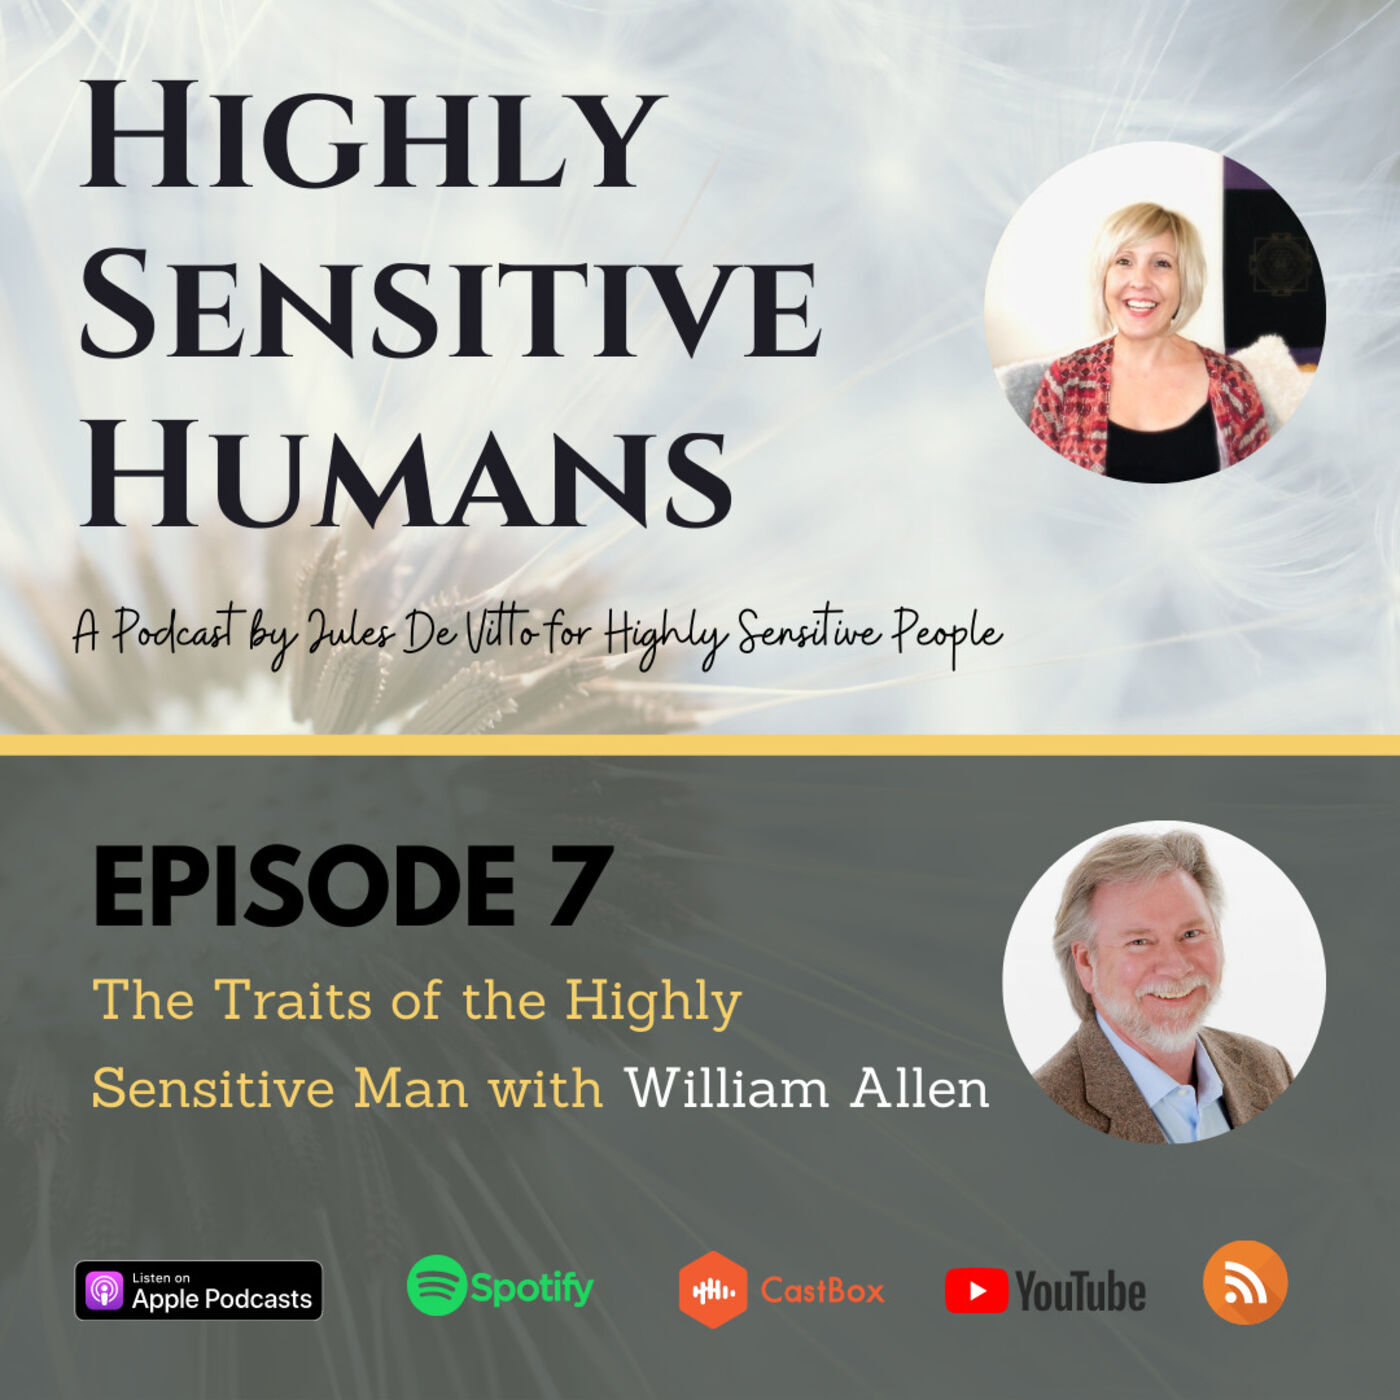 The Highly Sensitive Man with William Allen